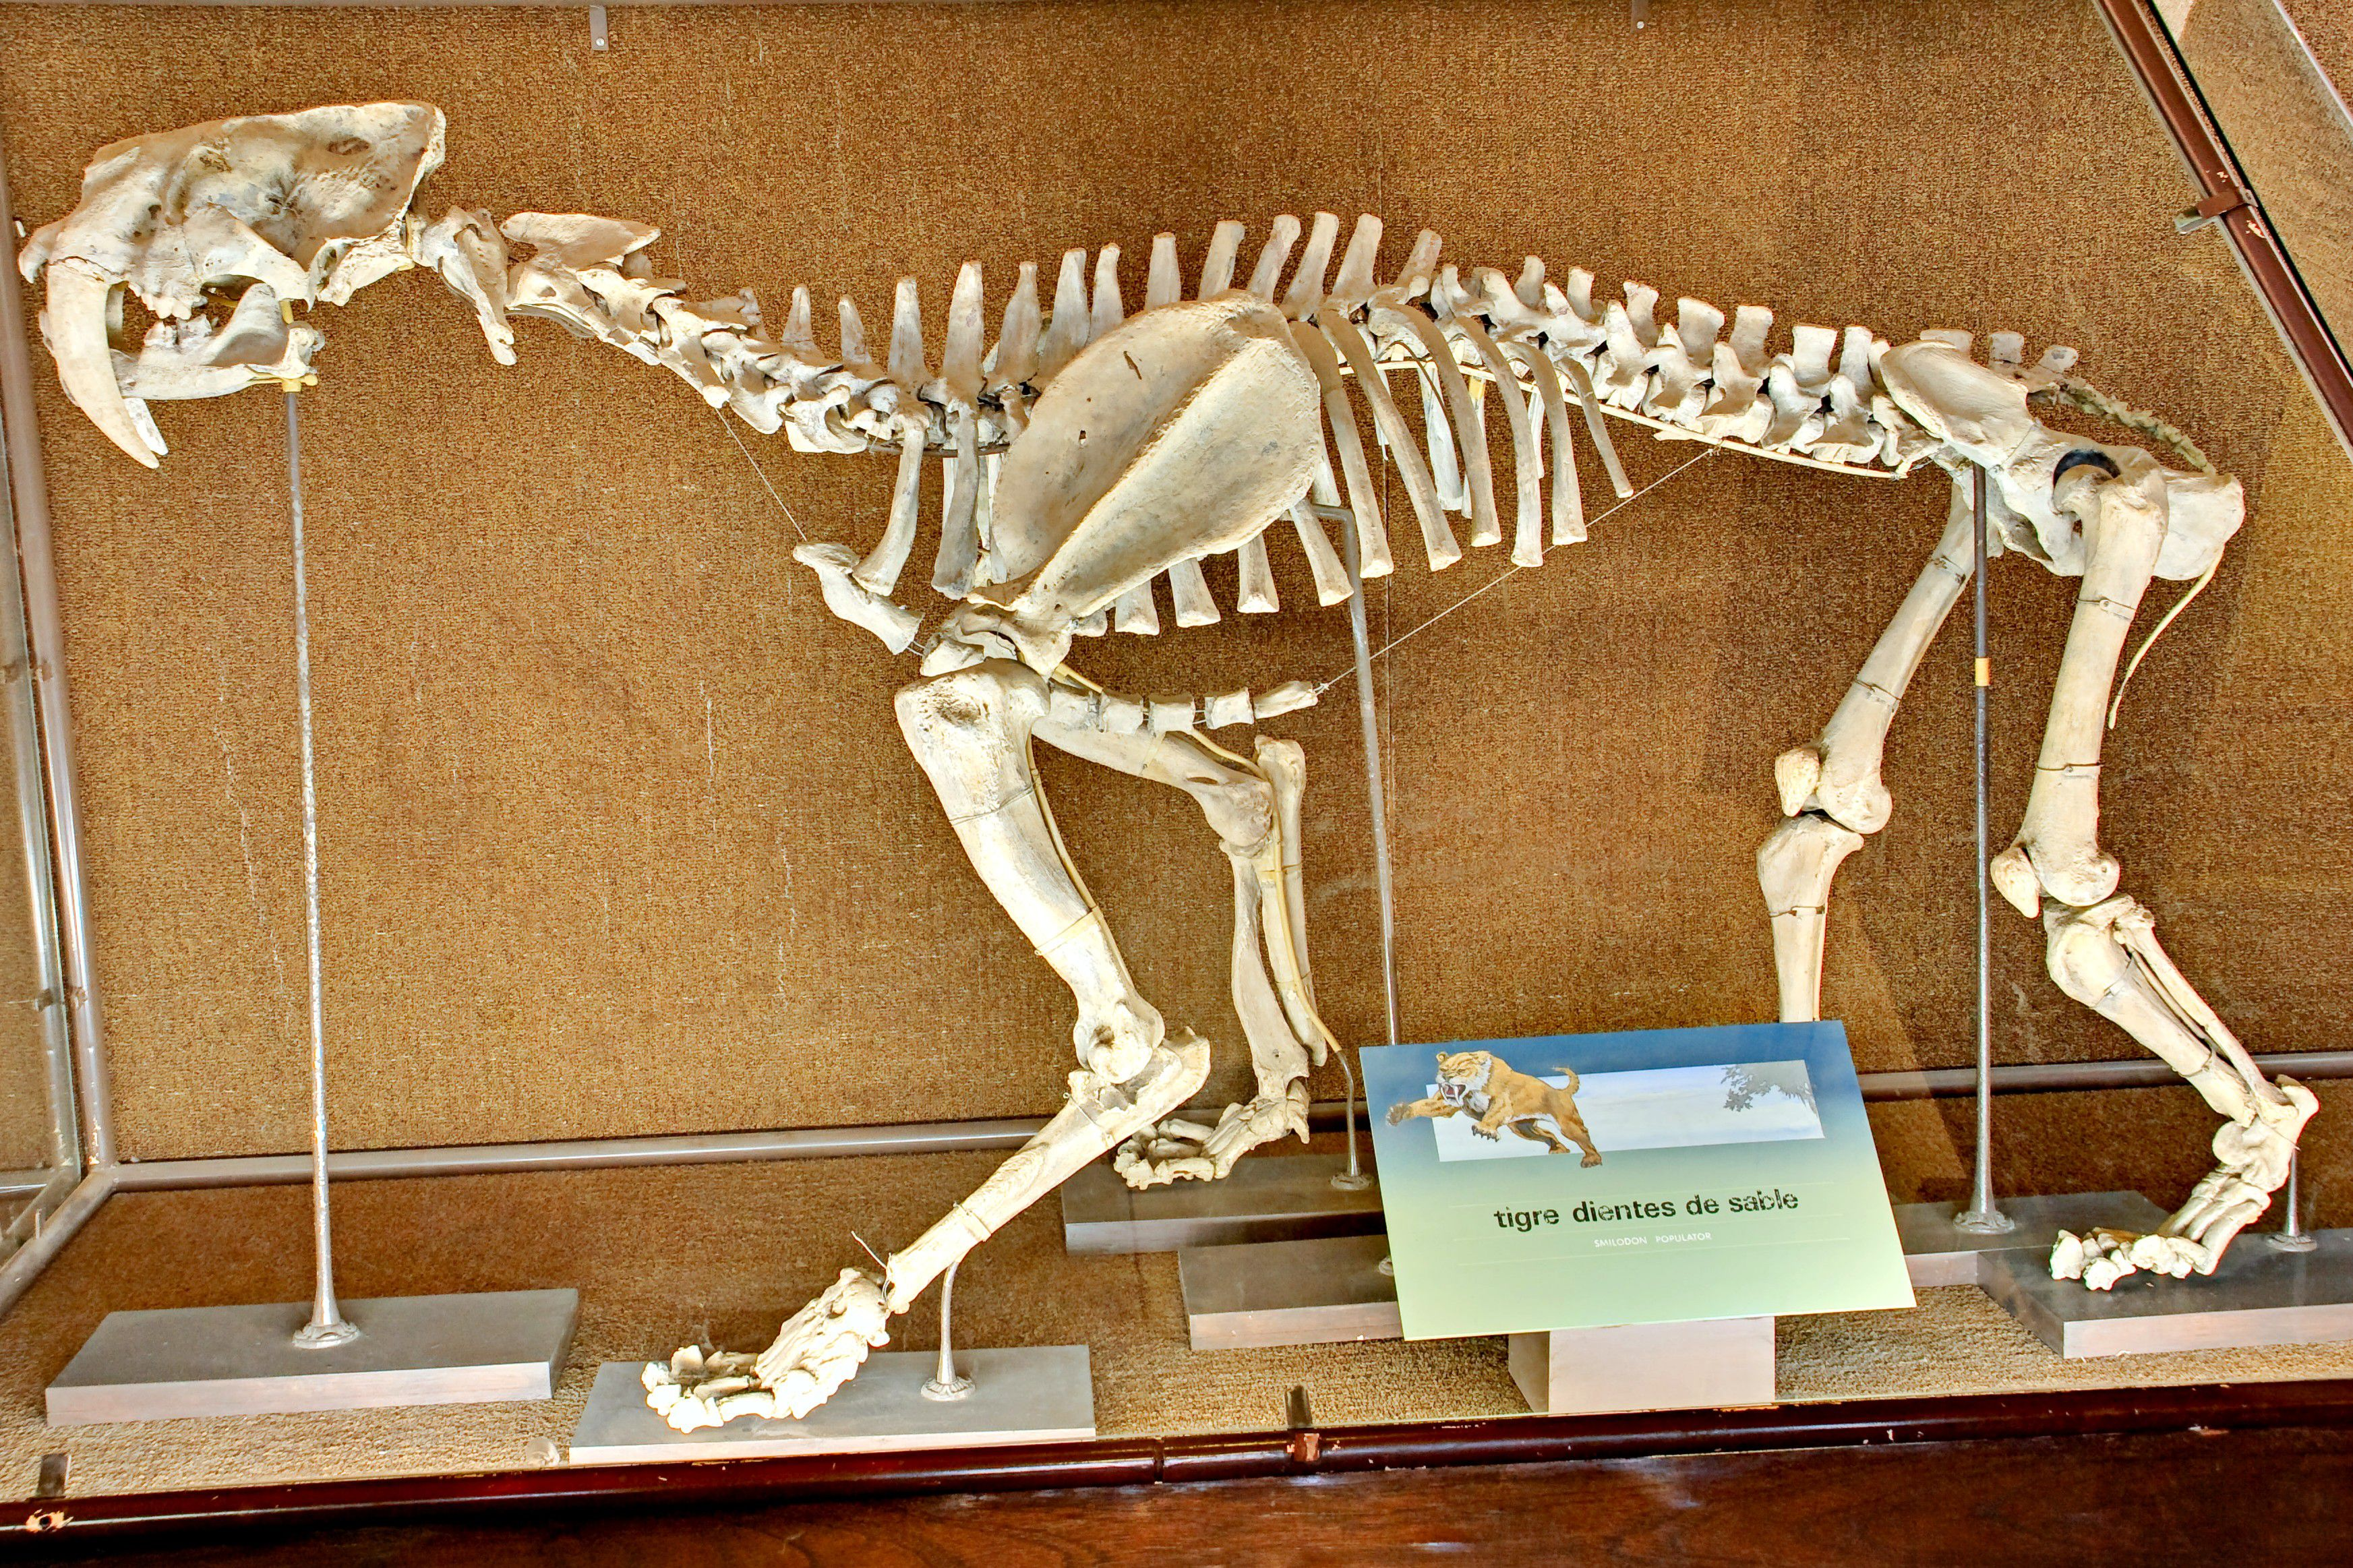 bb6b45e64 Smilodon populator, the largest smilodon species